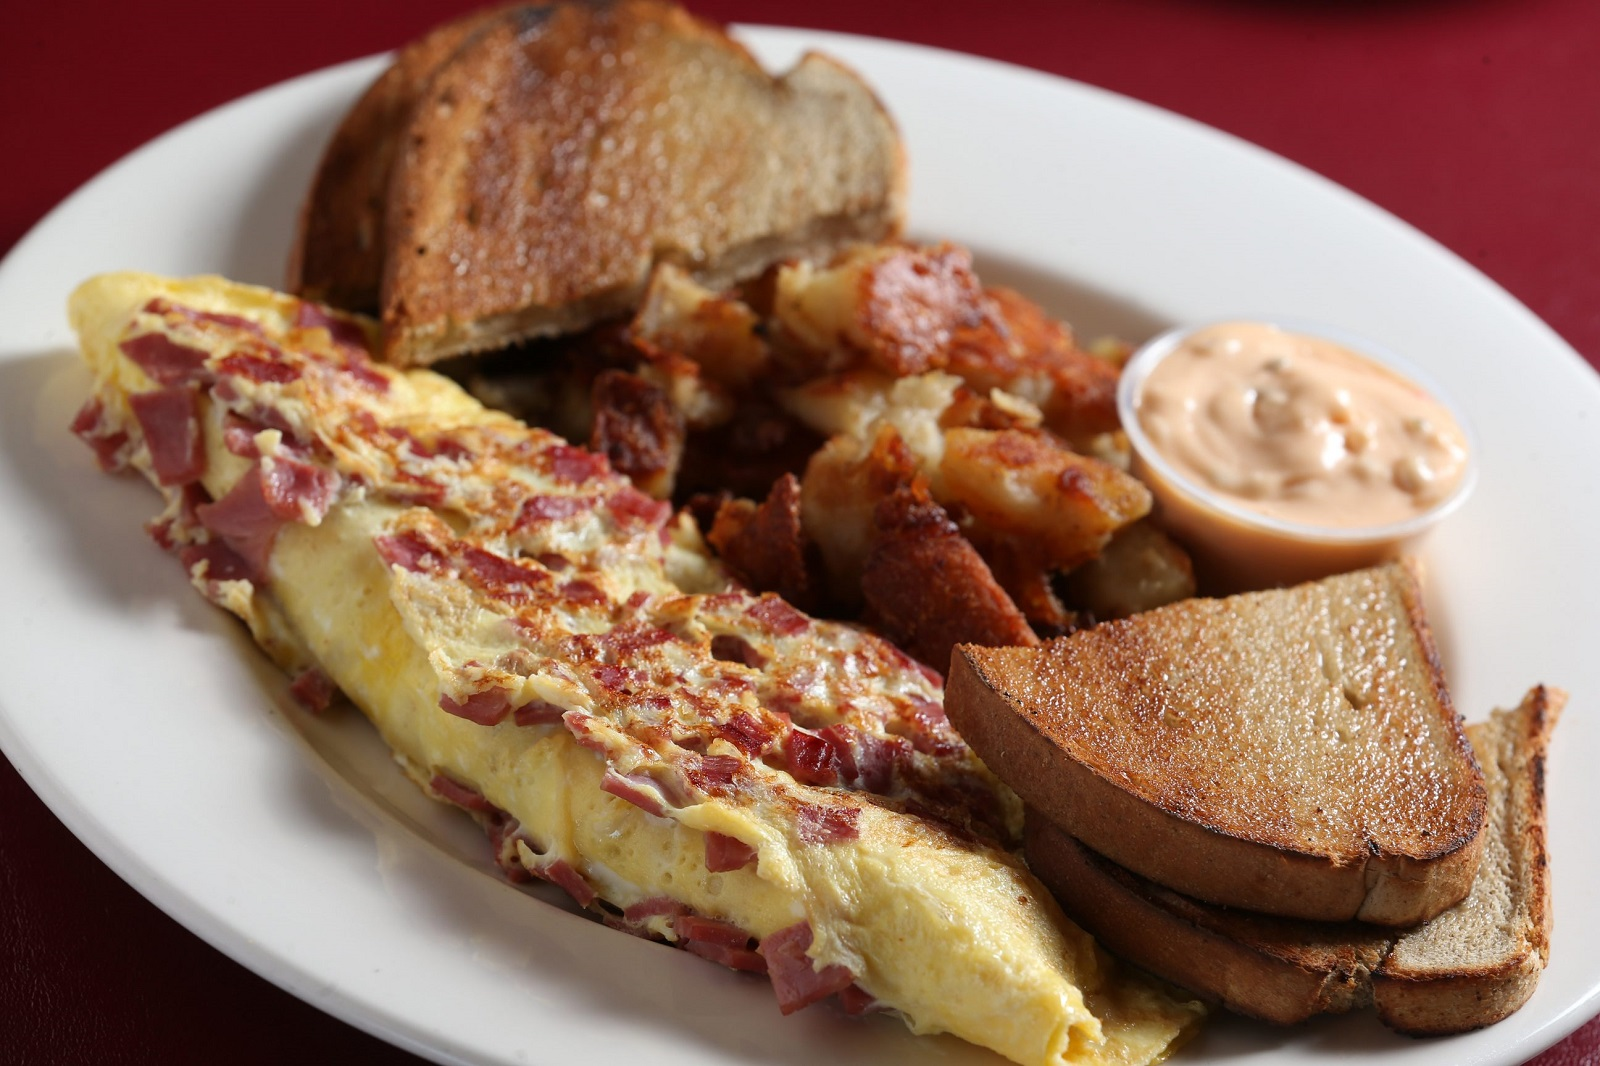 The Howling Rooster Cafe's the Roo-Ben Omelet, made with corned beef, sauerkraut, Swiss cheese and three extra large eggs. The restaurant will soon occupy the former Milano's. (Sharon Cantillon/Buffalo News)